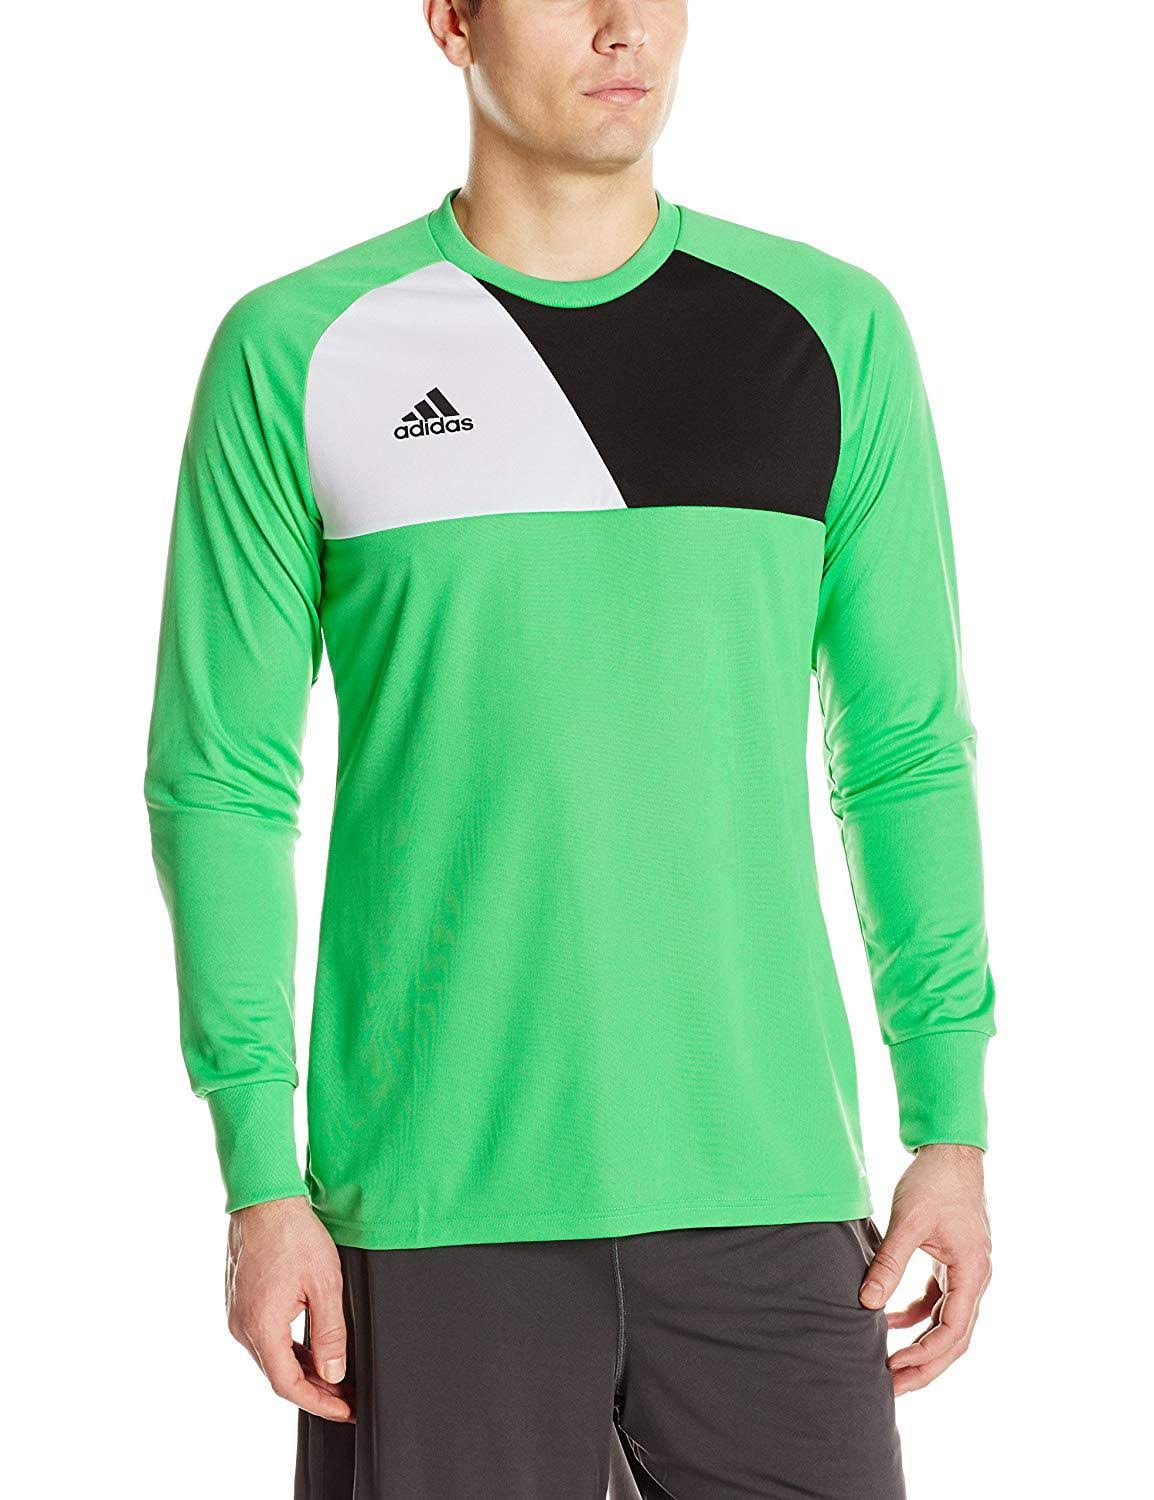 Adidas Men's Assita 17 Goalkeeper Long Sleeve Shirt - Green/Black/White, Small